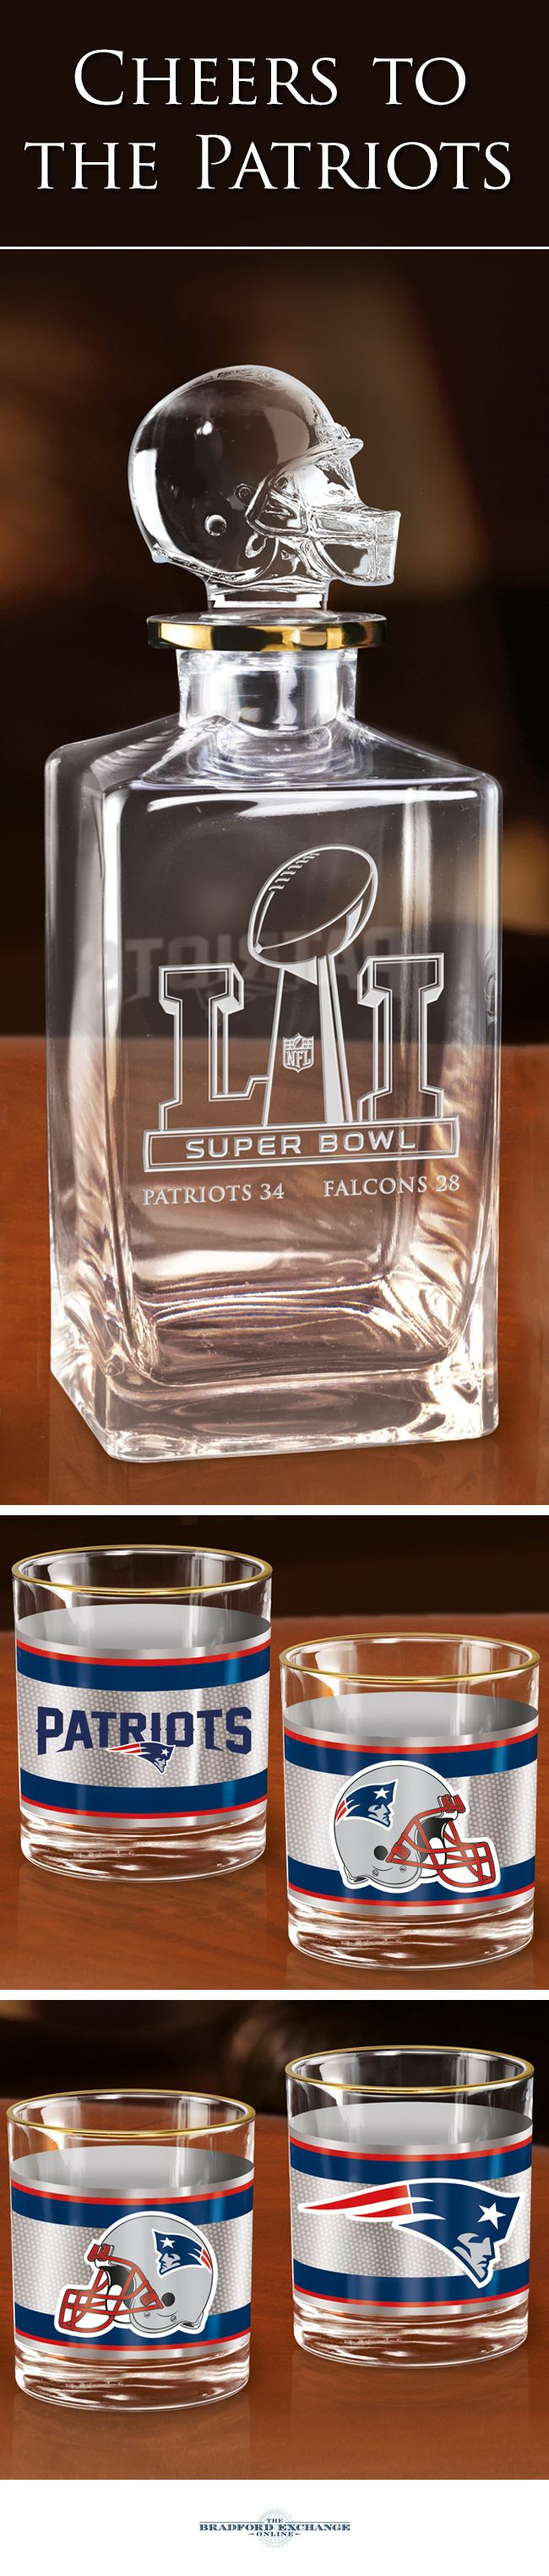 Raise a toast to your Super Bowl LI Champions with this New England Patriots decanter set. This officially-licensed NFL barware set includes a crystal-clear decanter with a custom helmet topper and Super Bowl LI logo, 4 team icon glasses rimmed in gleaming 12K gold and a satin-lined gift box.